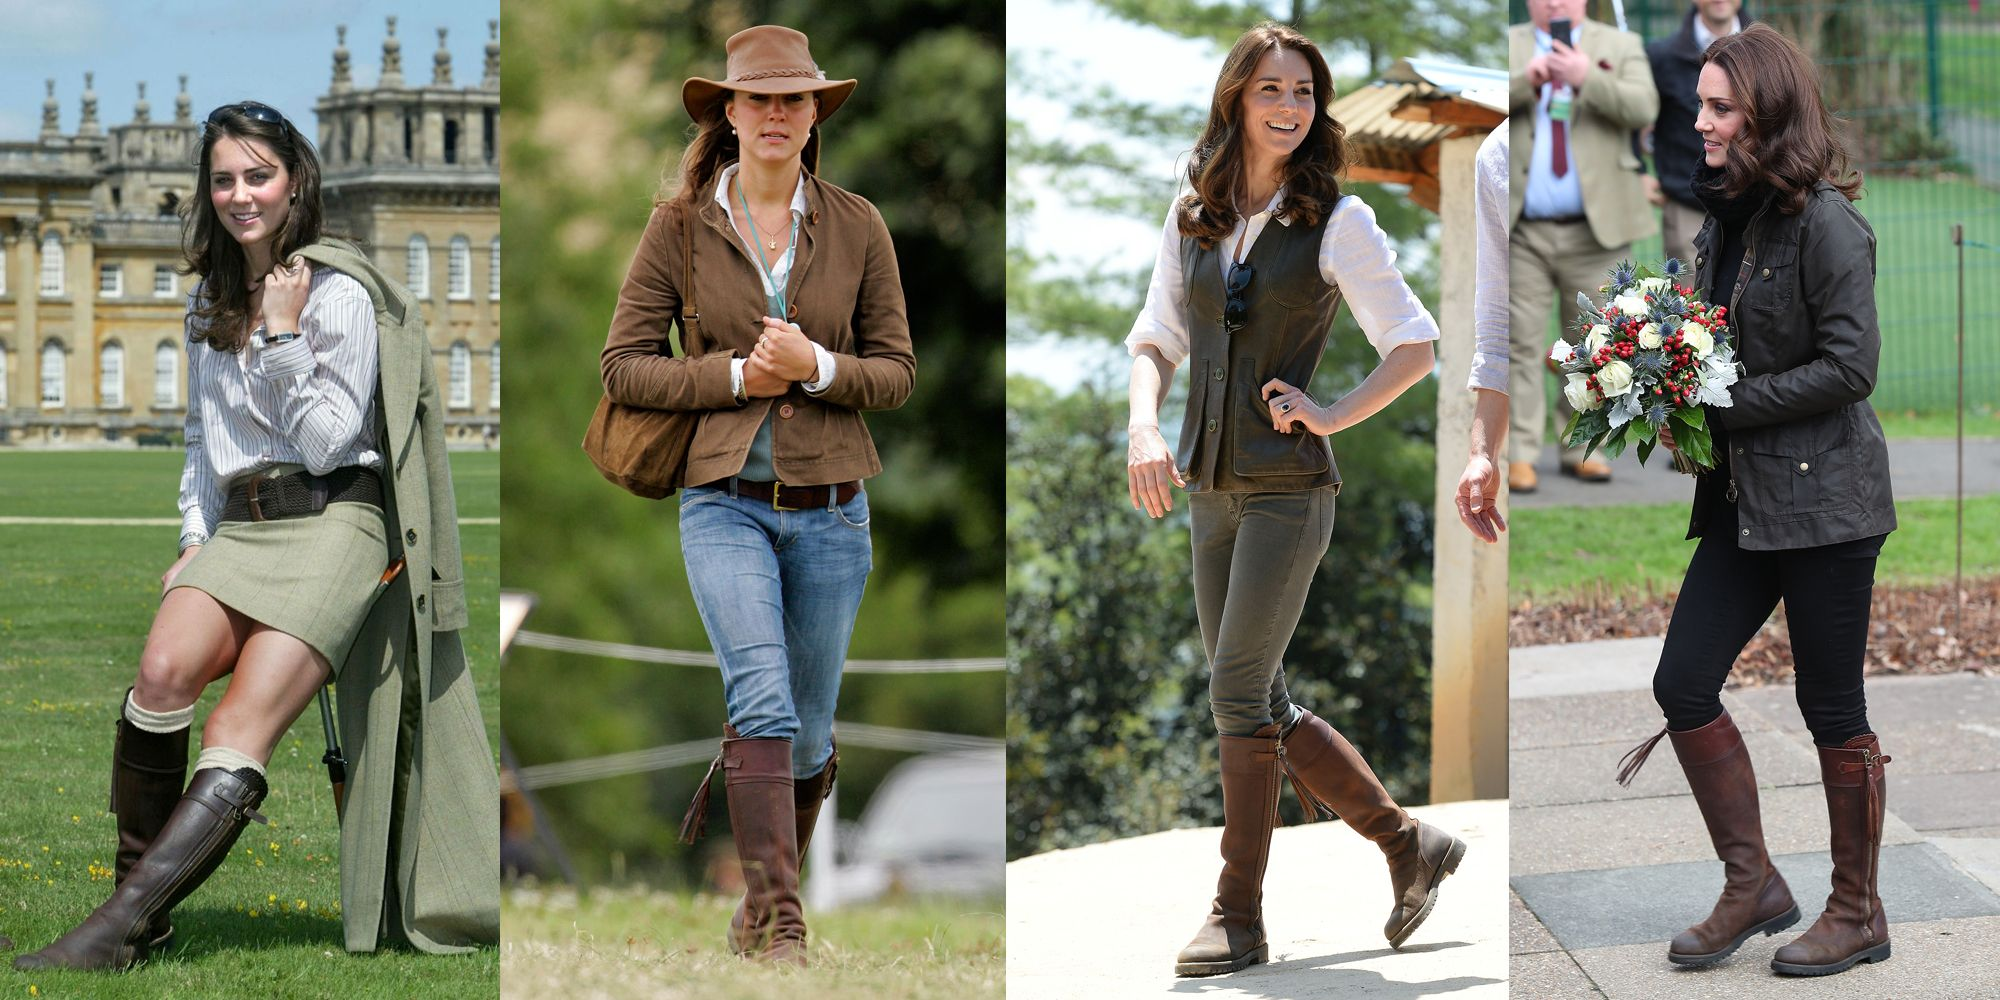 c01b69d7d27 Kate Middleton Recycles Her Favorite Boots - Kate Middleton Penelope ...